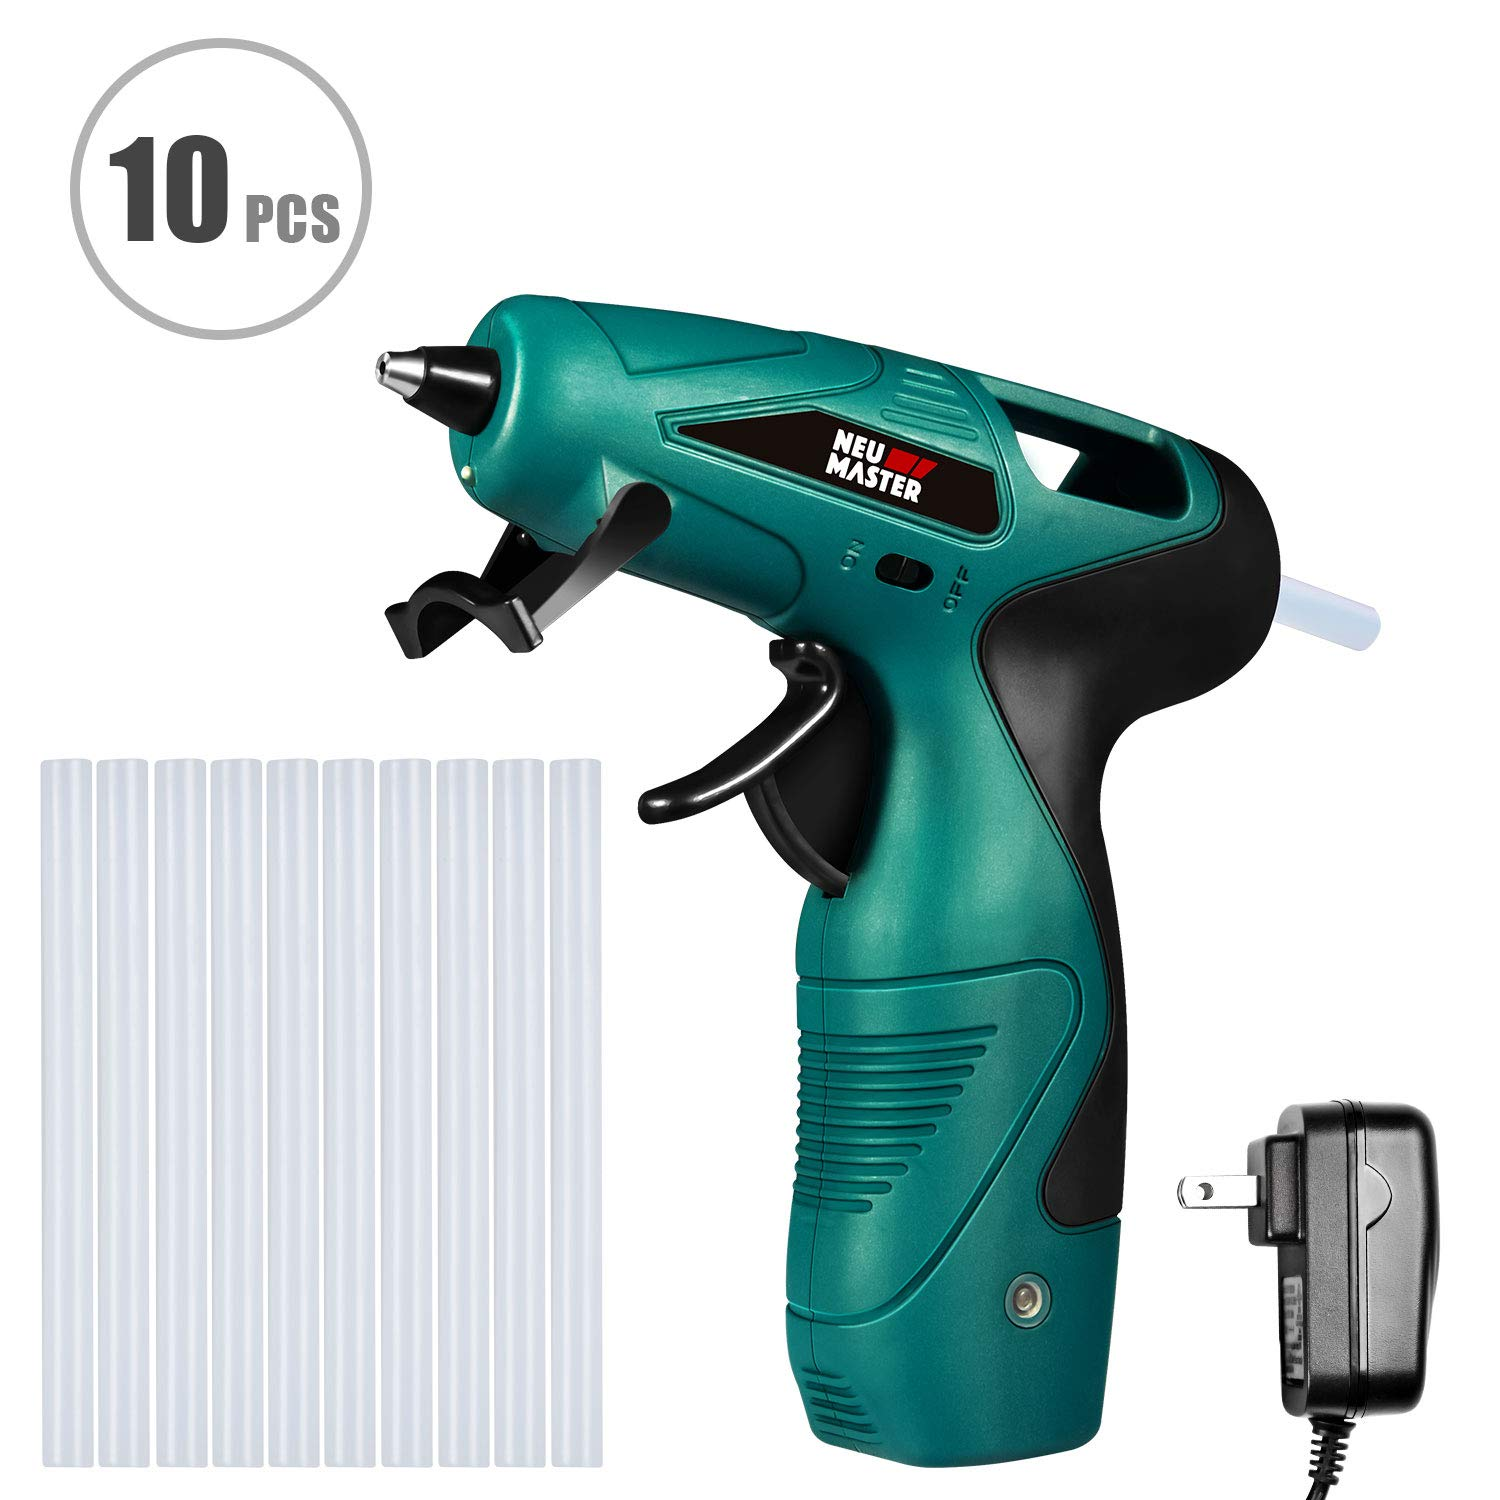 Hot Glue Gun,Cordless Mini Glue Gun Kit with 10pcs Glue Sticks for DIY Small Craft Projects & Sealing,Arts, Craft in Home or School and Quick Repairs by NEU Master